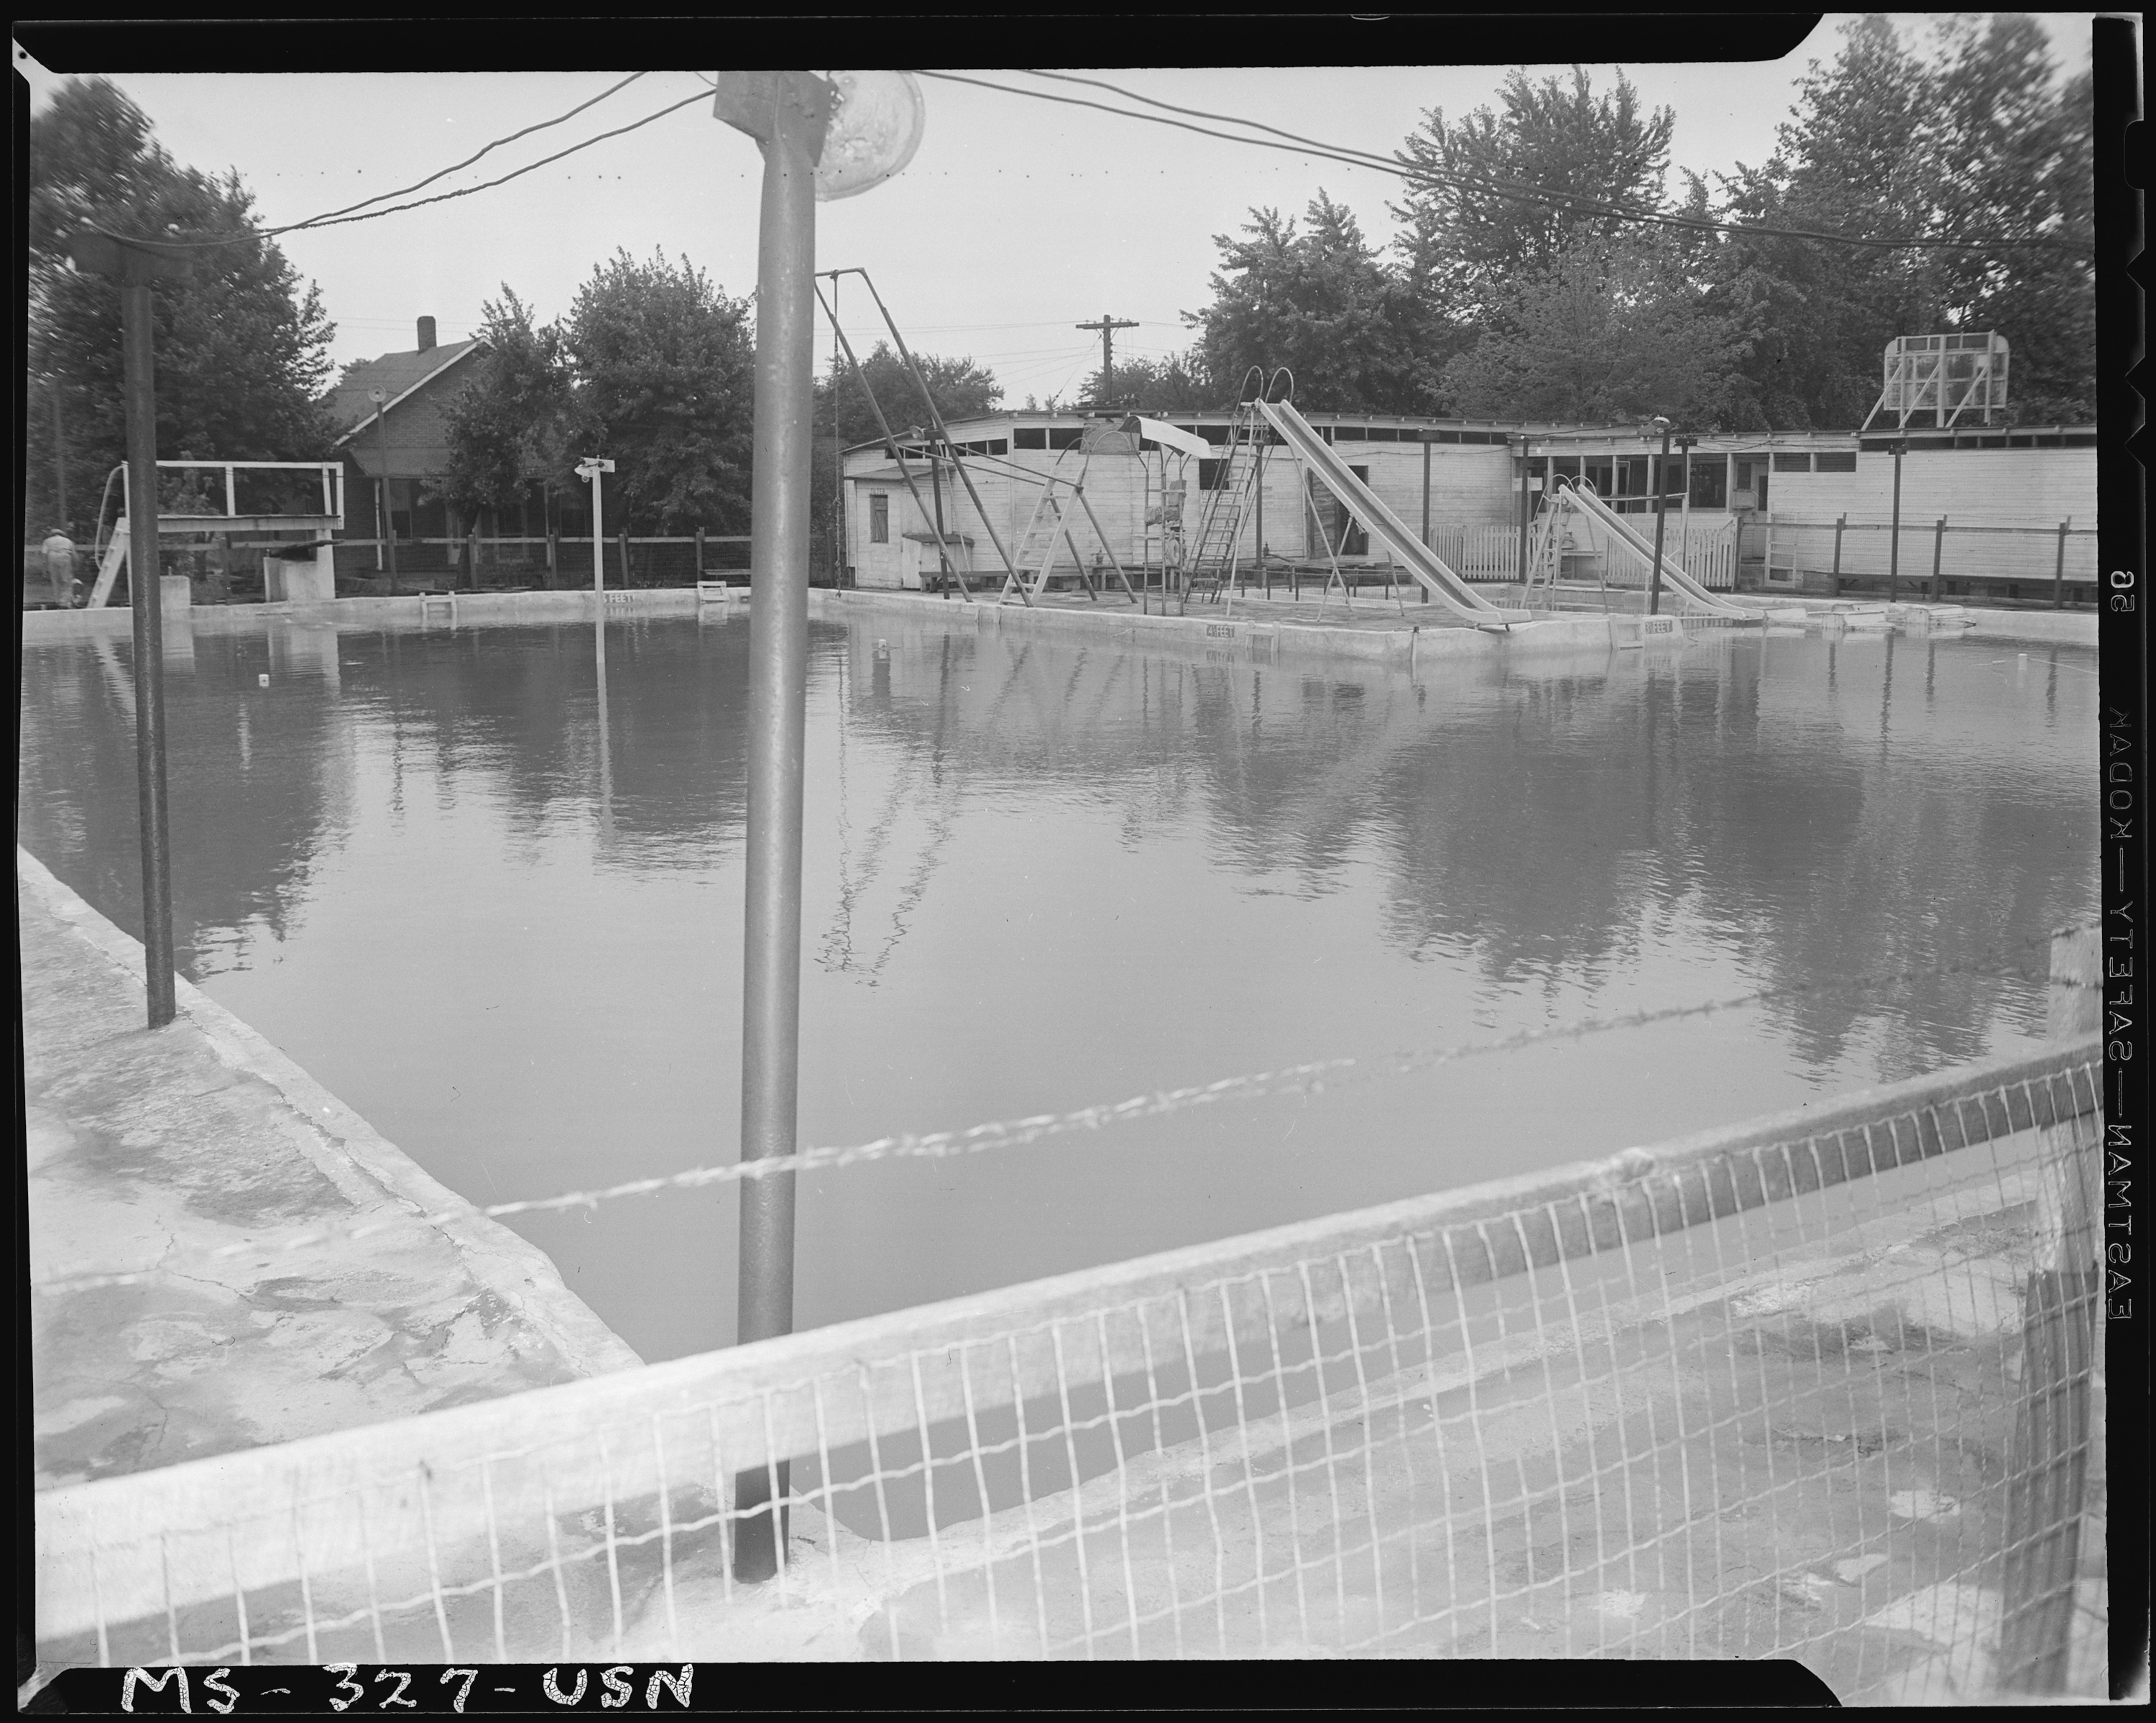 Old Swimming Pool : File commercial swimming pool under investigation by